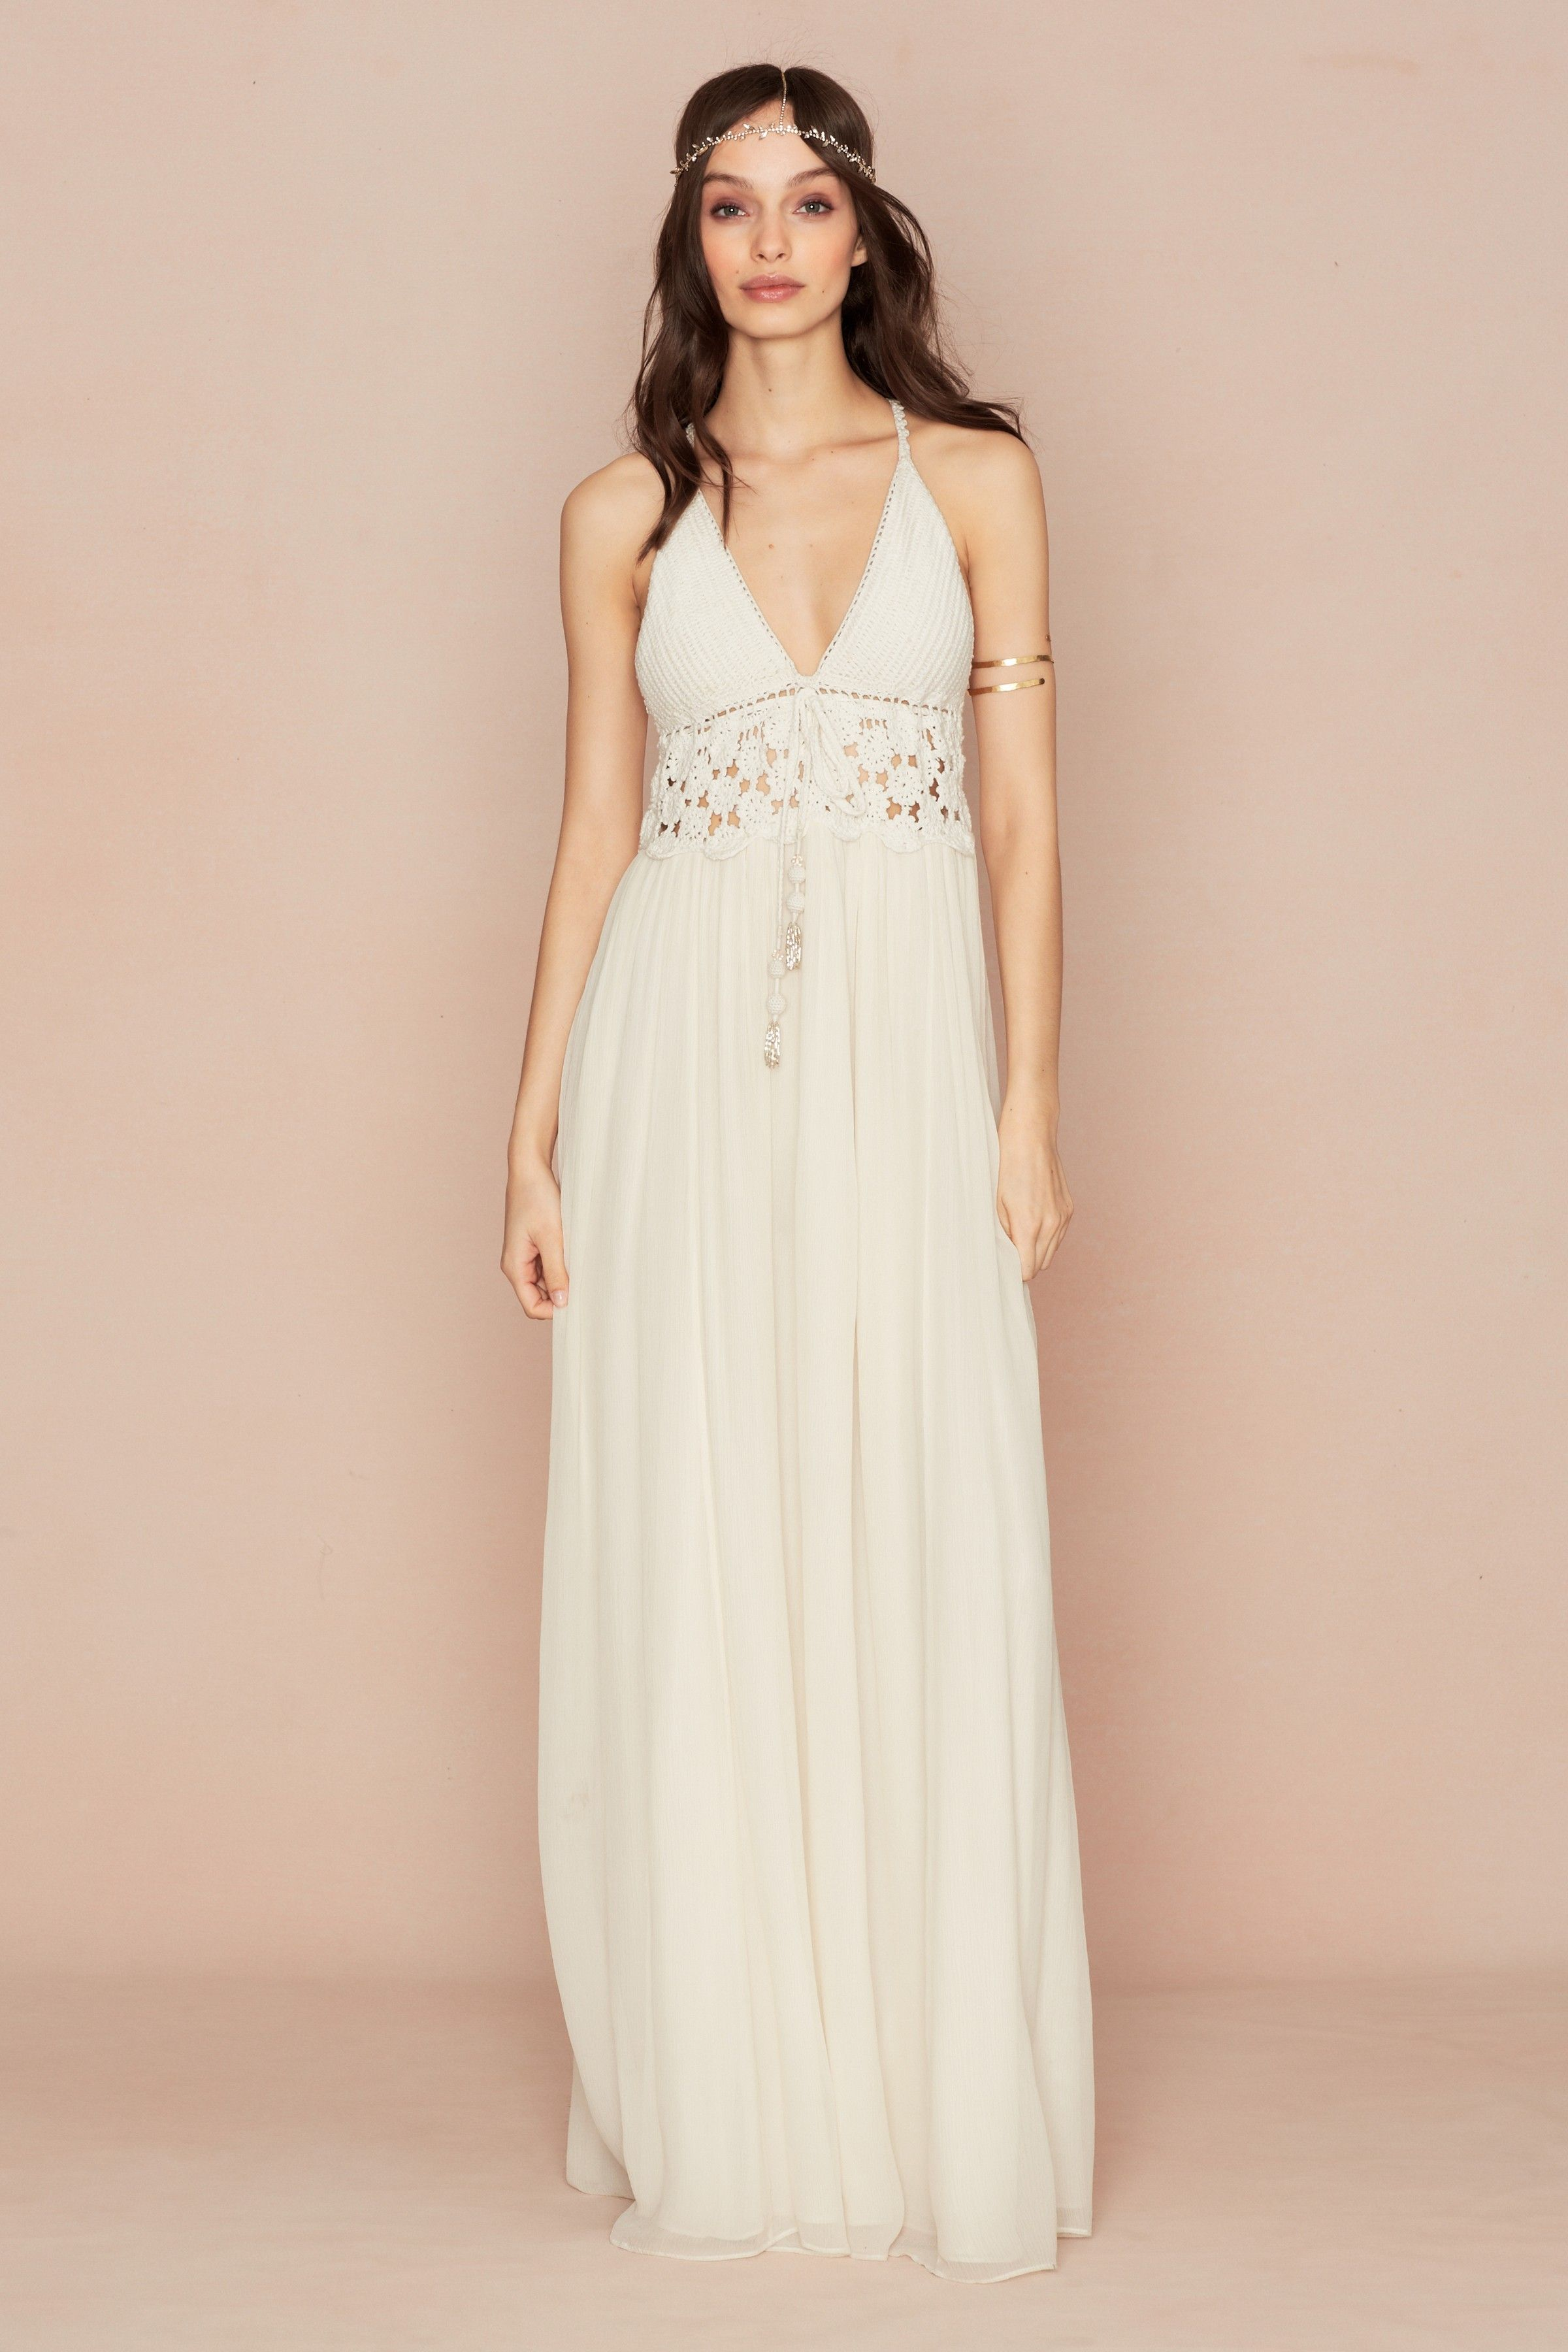 Introducing Mariee Calypso St Barths Bridal Collection For The Bohemian Bride Sasina Cotton